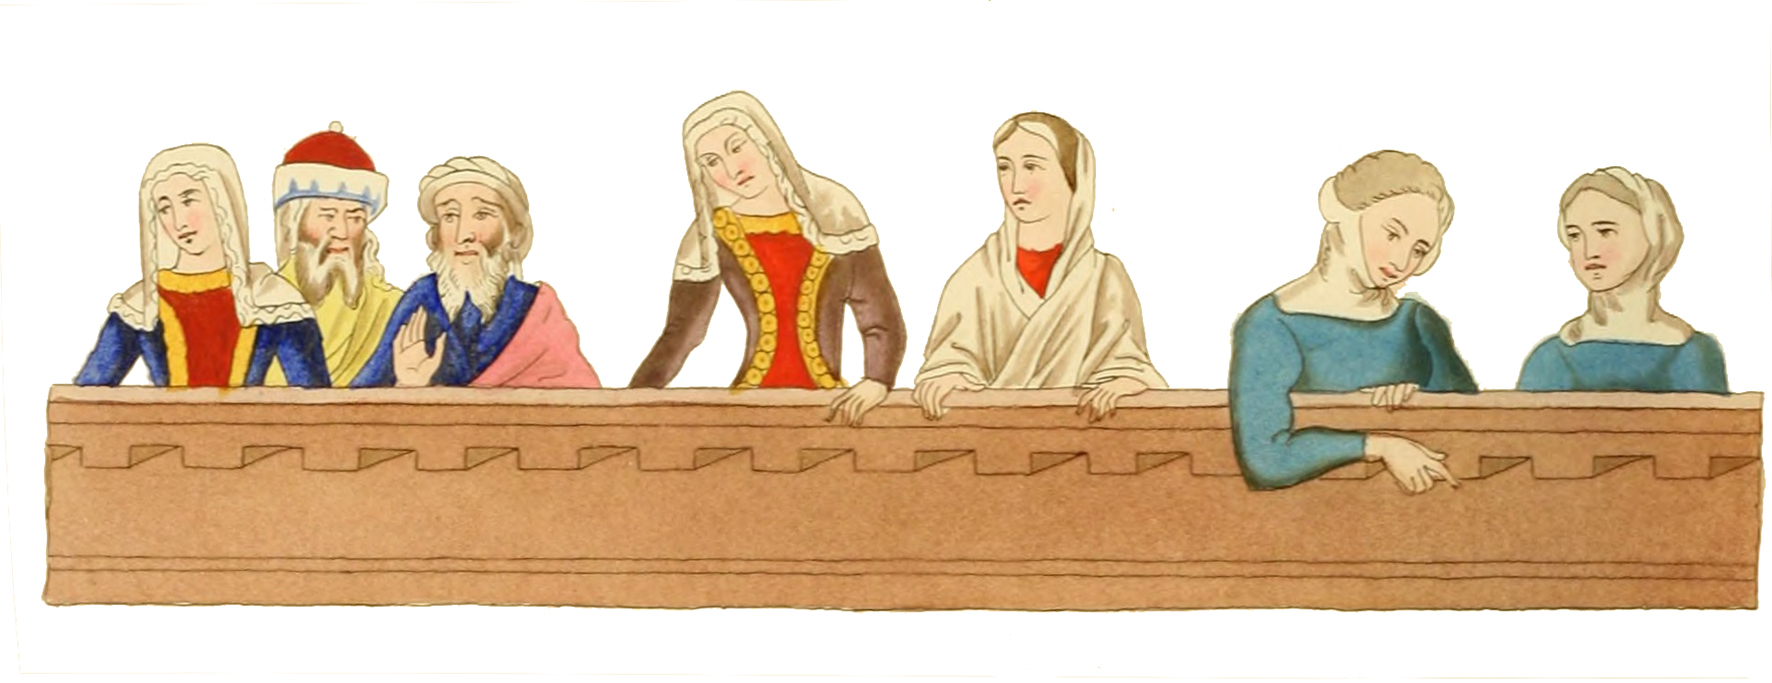 men and women Medieval ages